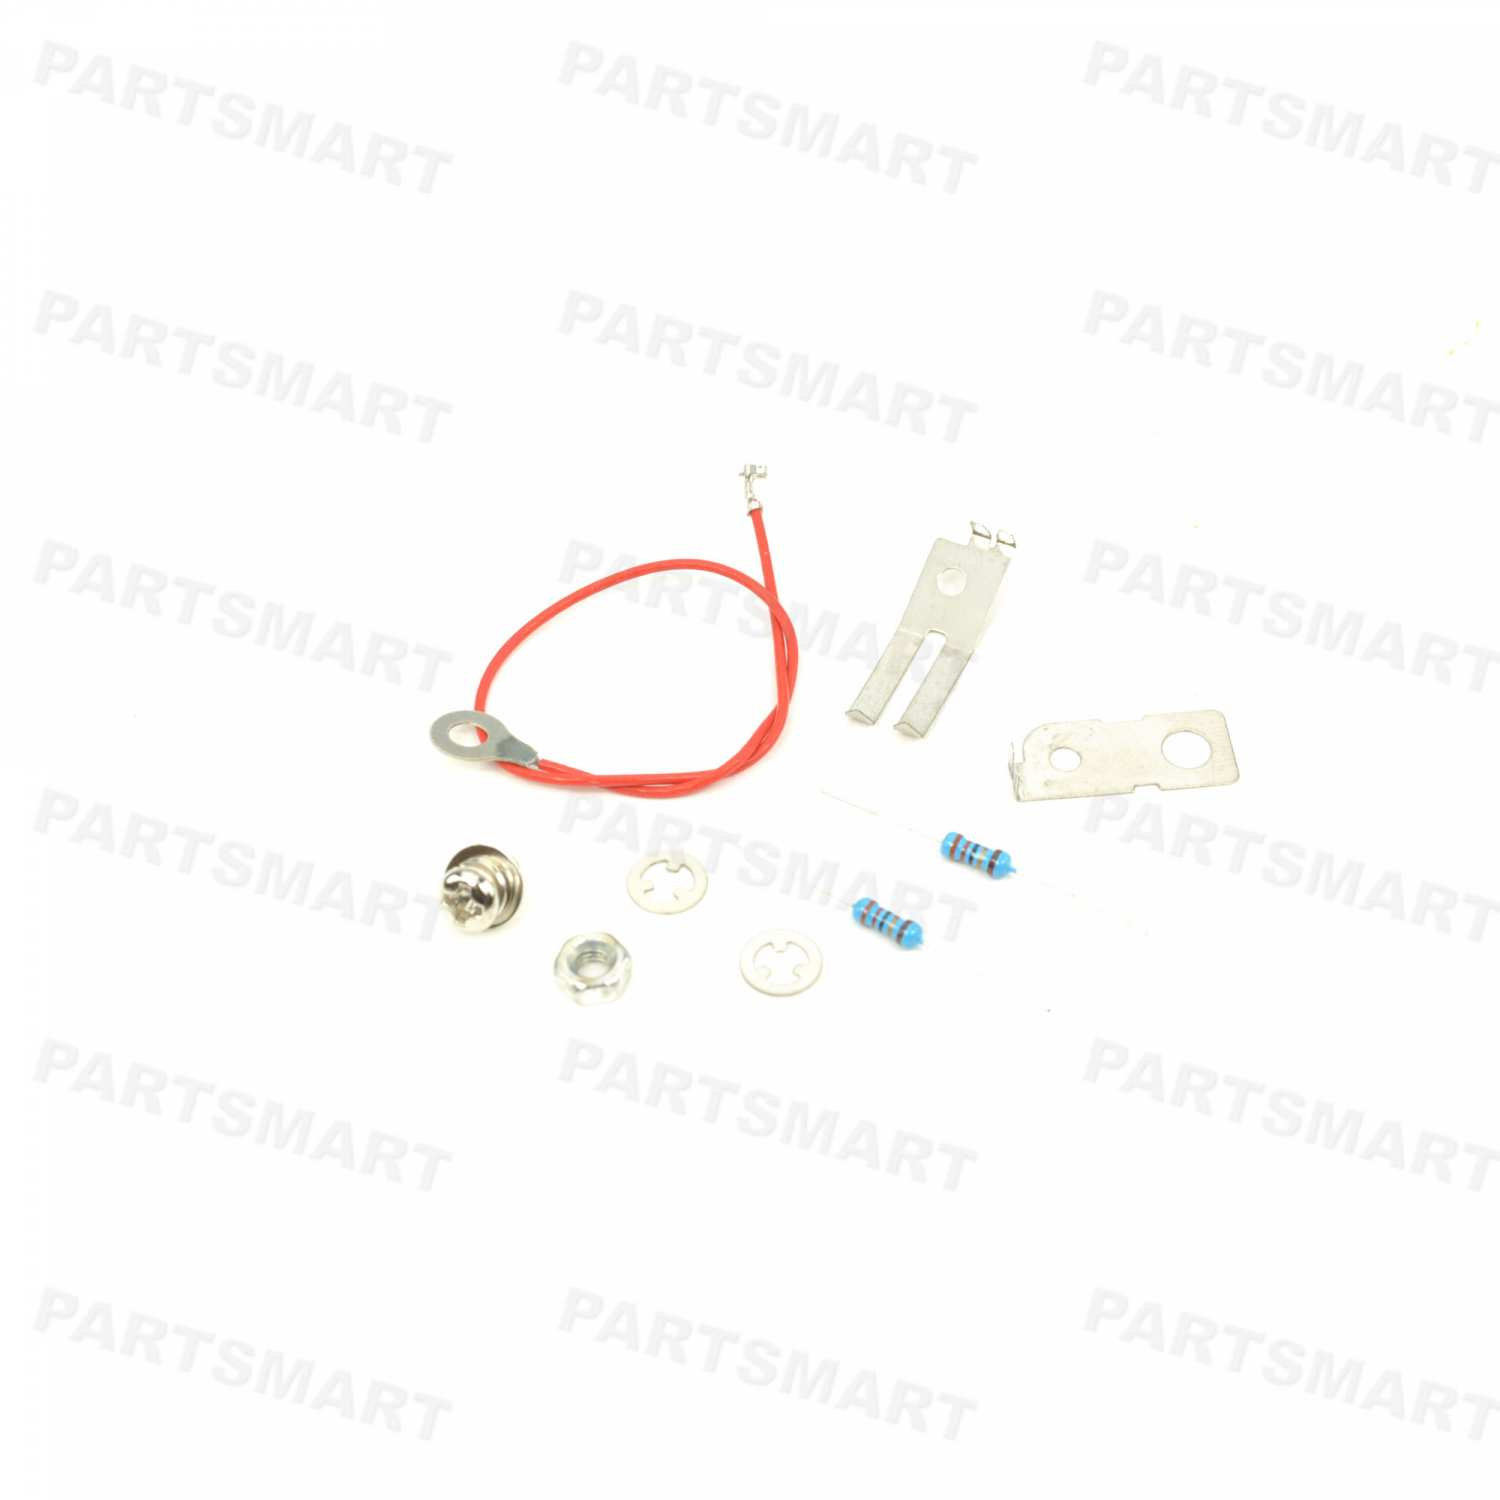 KIT-4700-RR Reset Resist Kit for HP Color LaserJet 4700, Color LaserJet CP4005